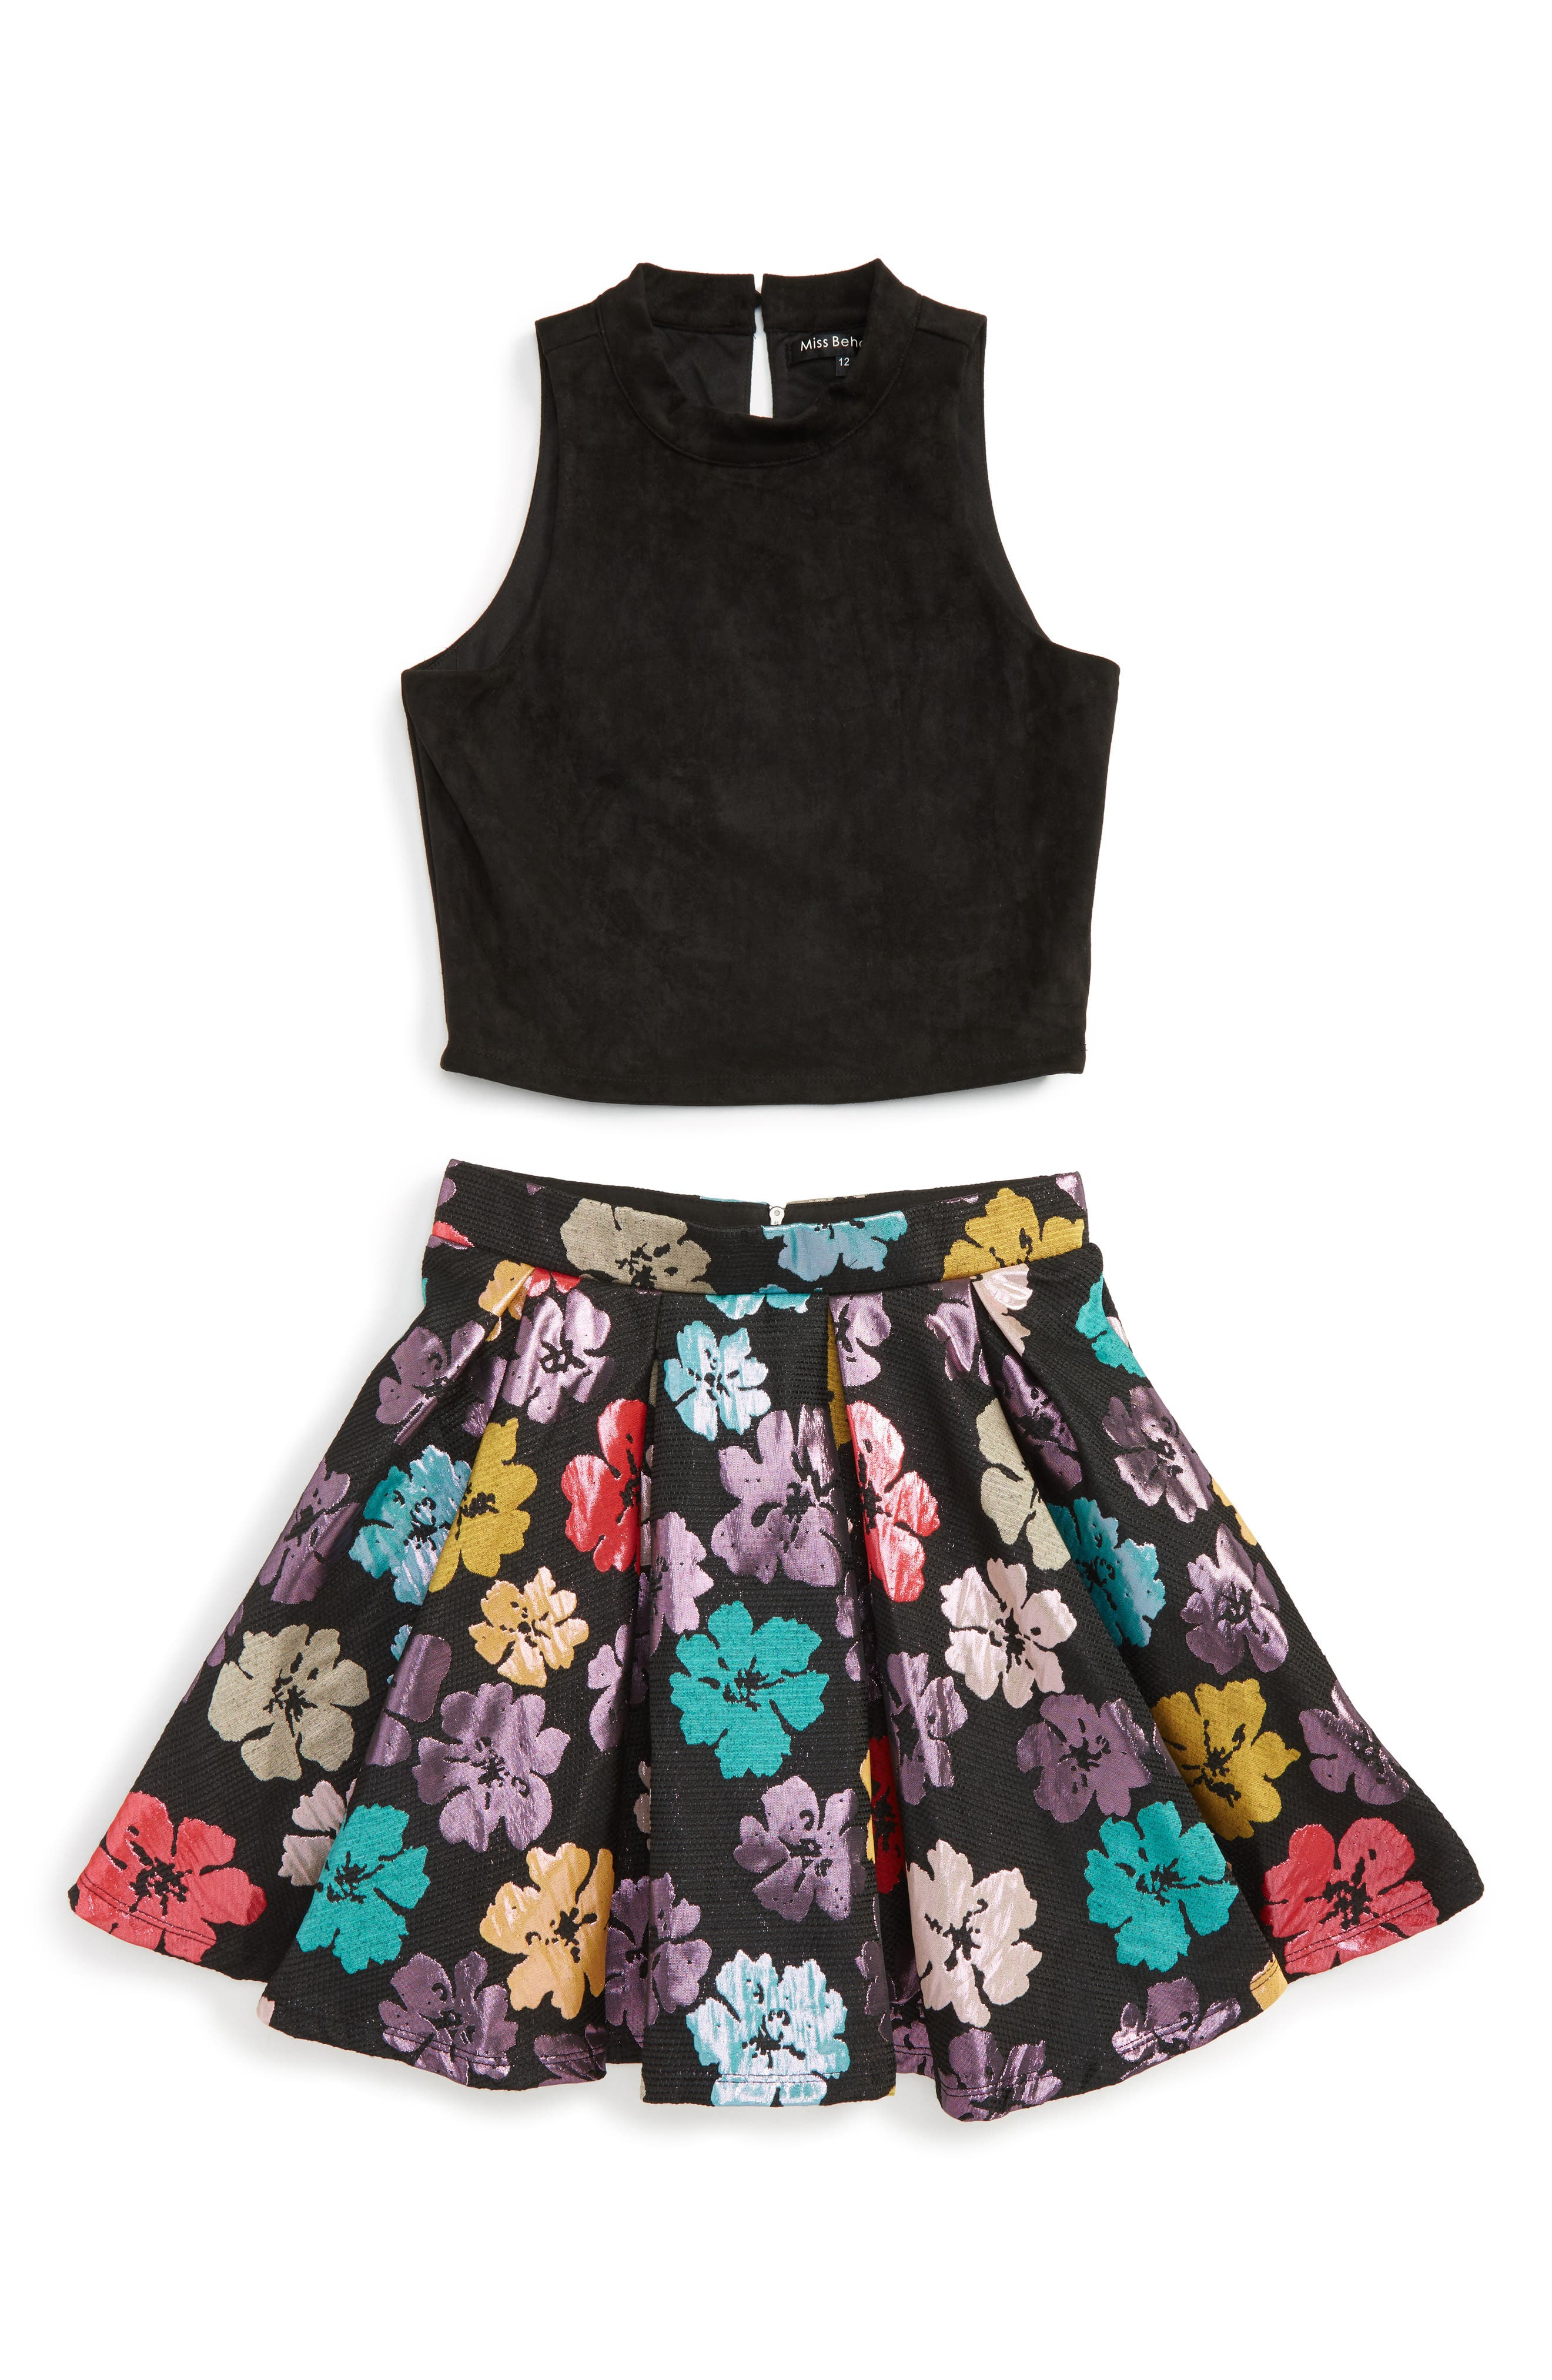 Miss Behave Savanna Meet & Greet Solid Top & Floral Skirt Set (Big Girls)